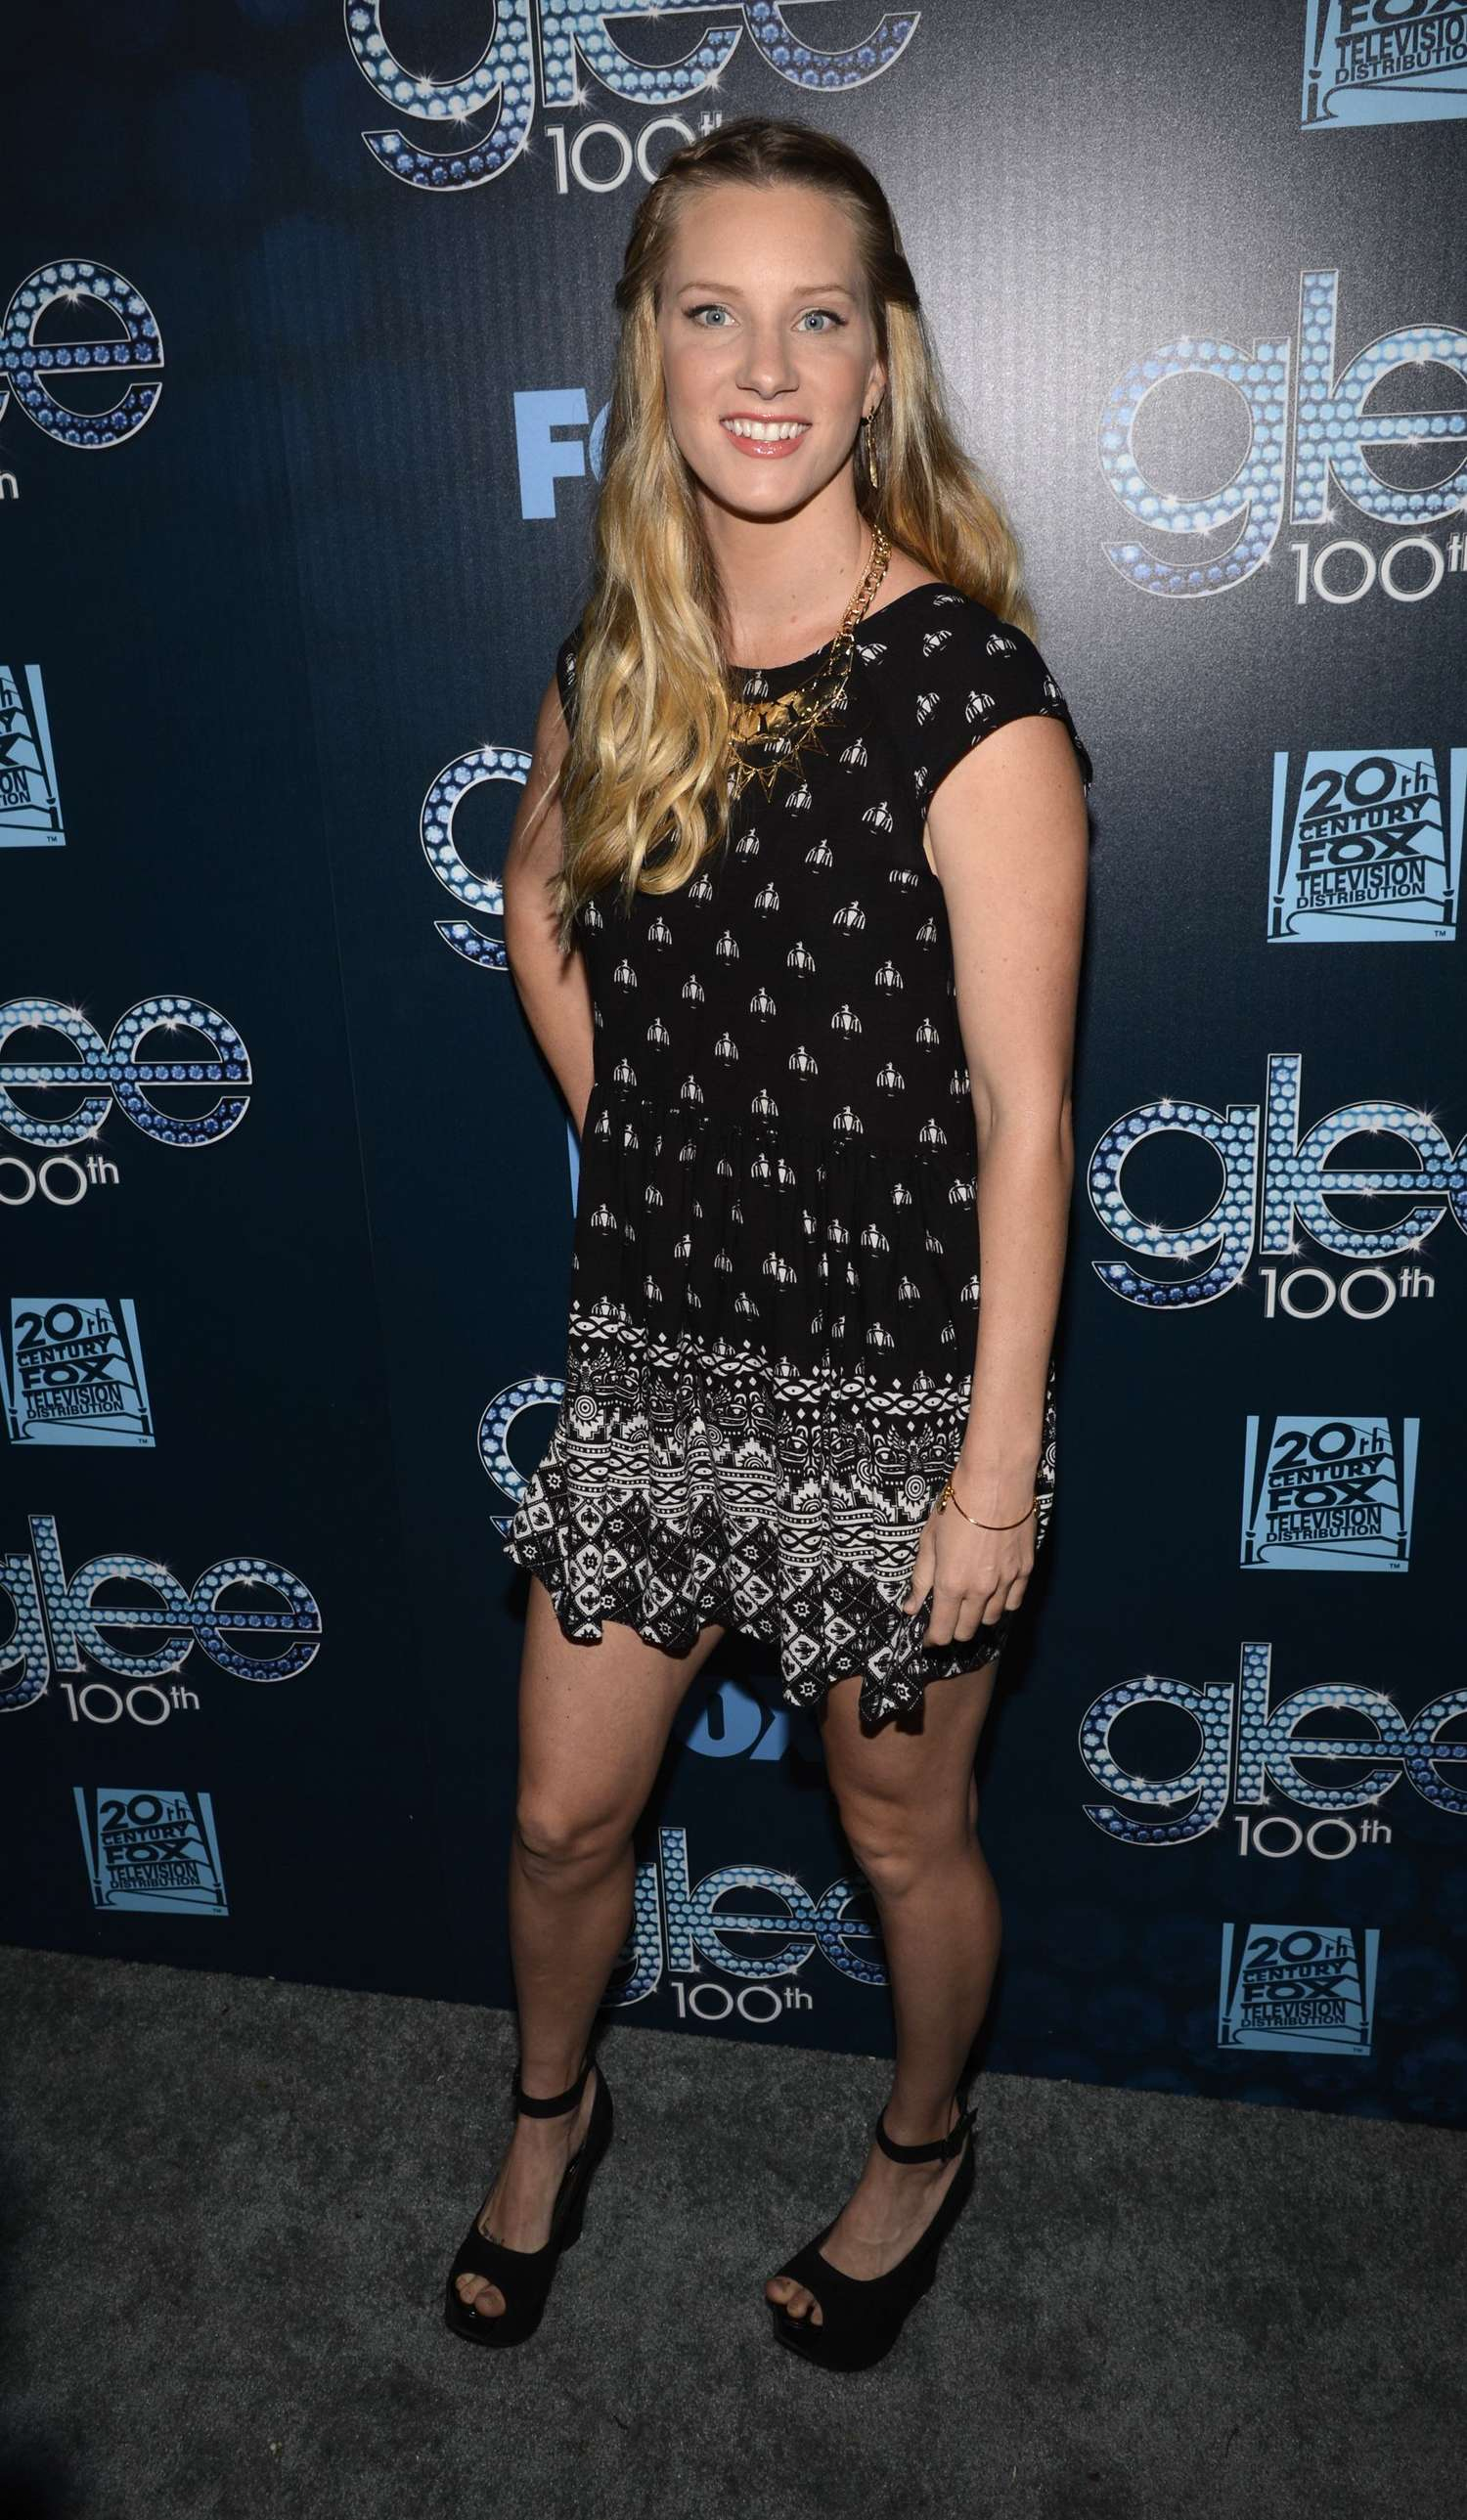 Heather Morris Glee Episode Celebration in Los Angeles